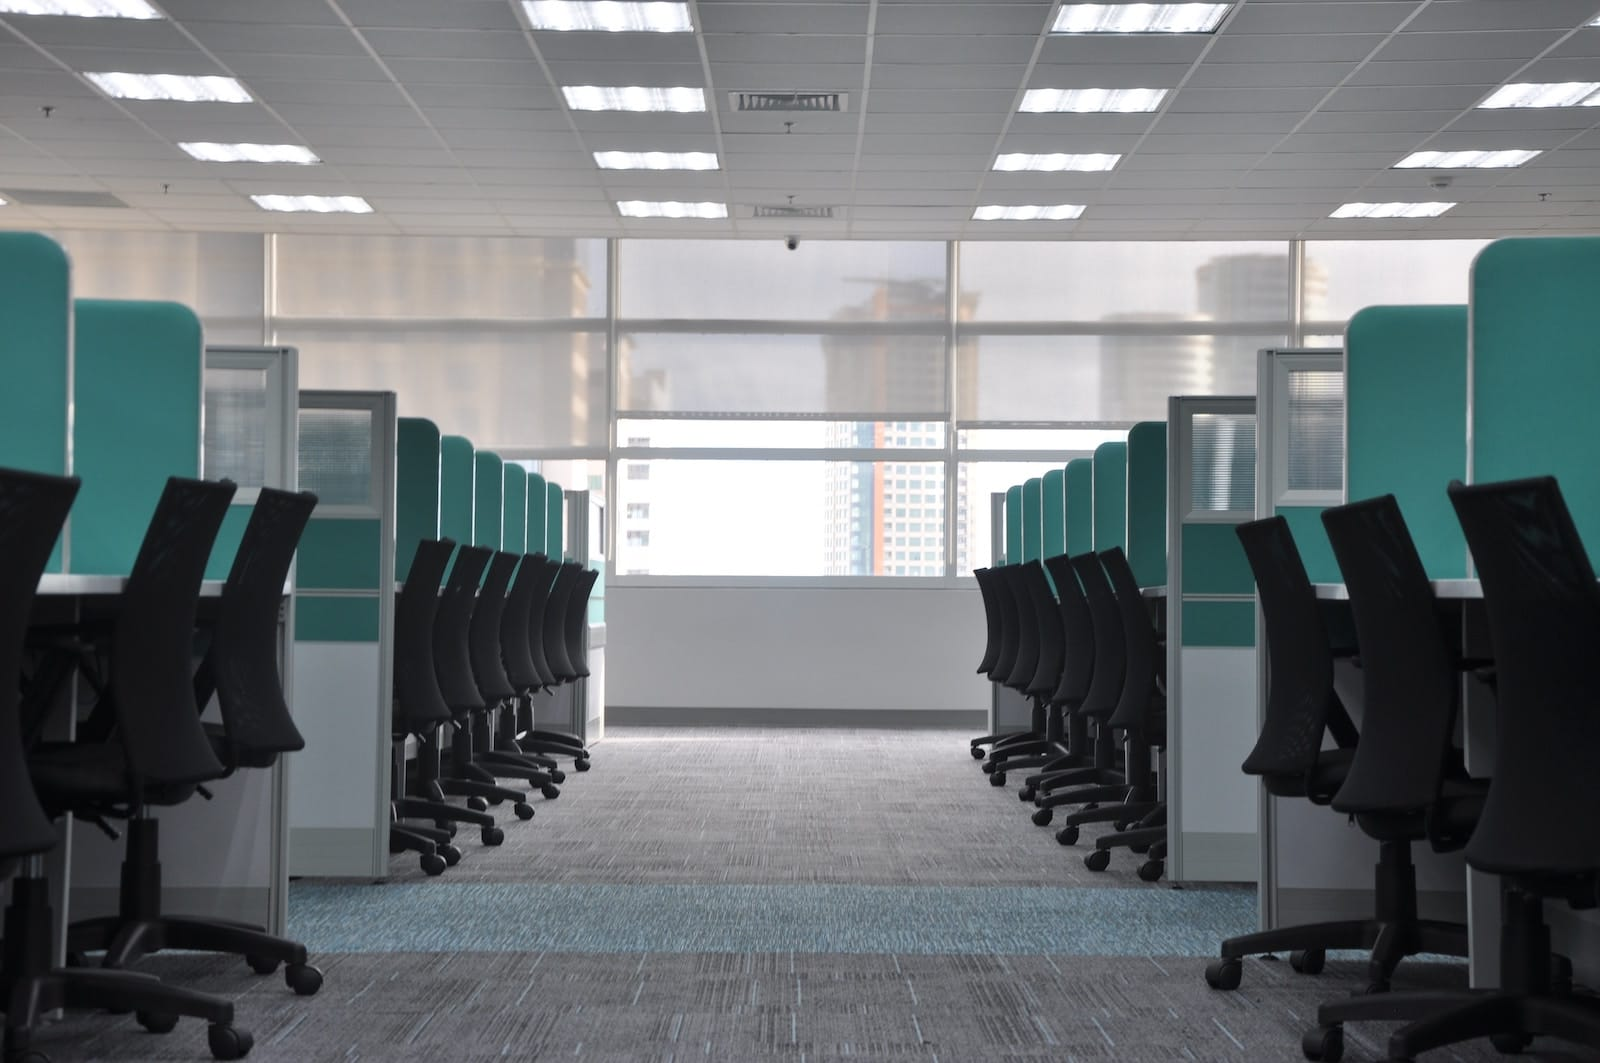 Empty row of desks and chairs in office.